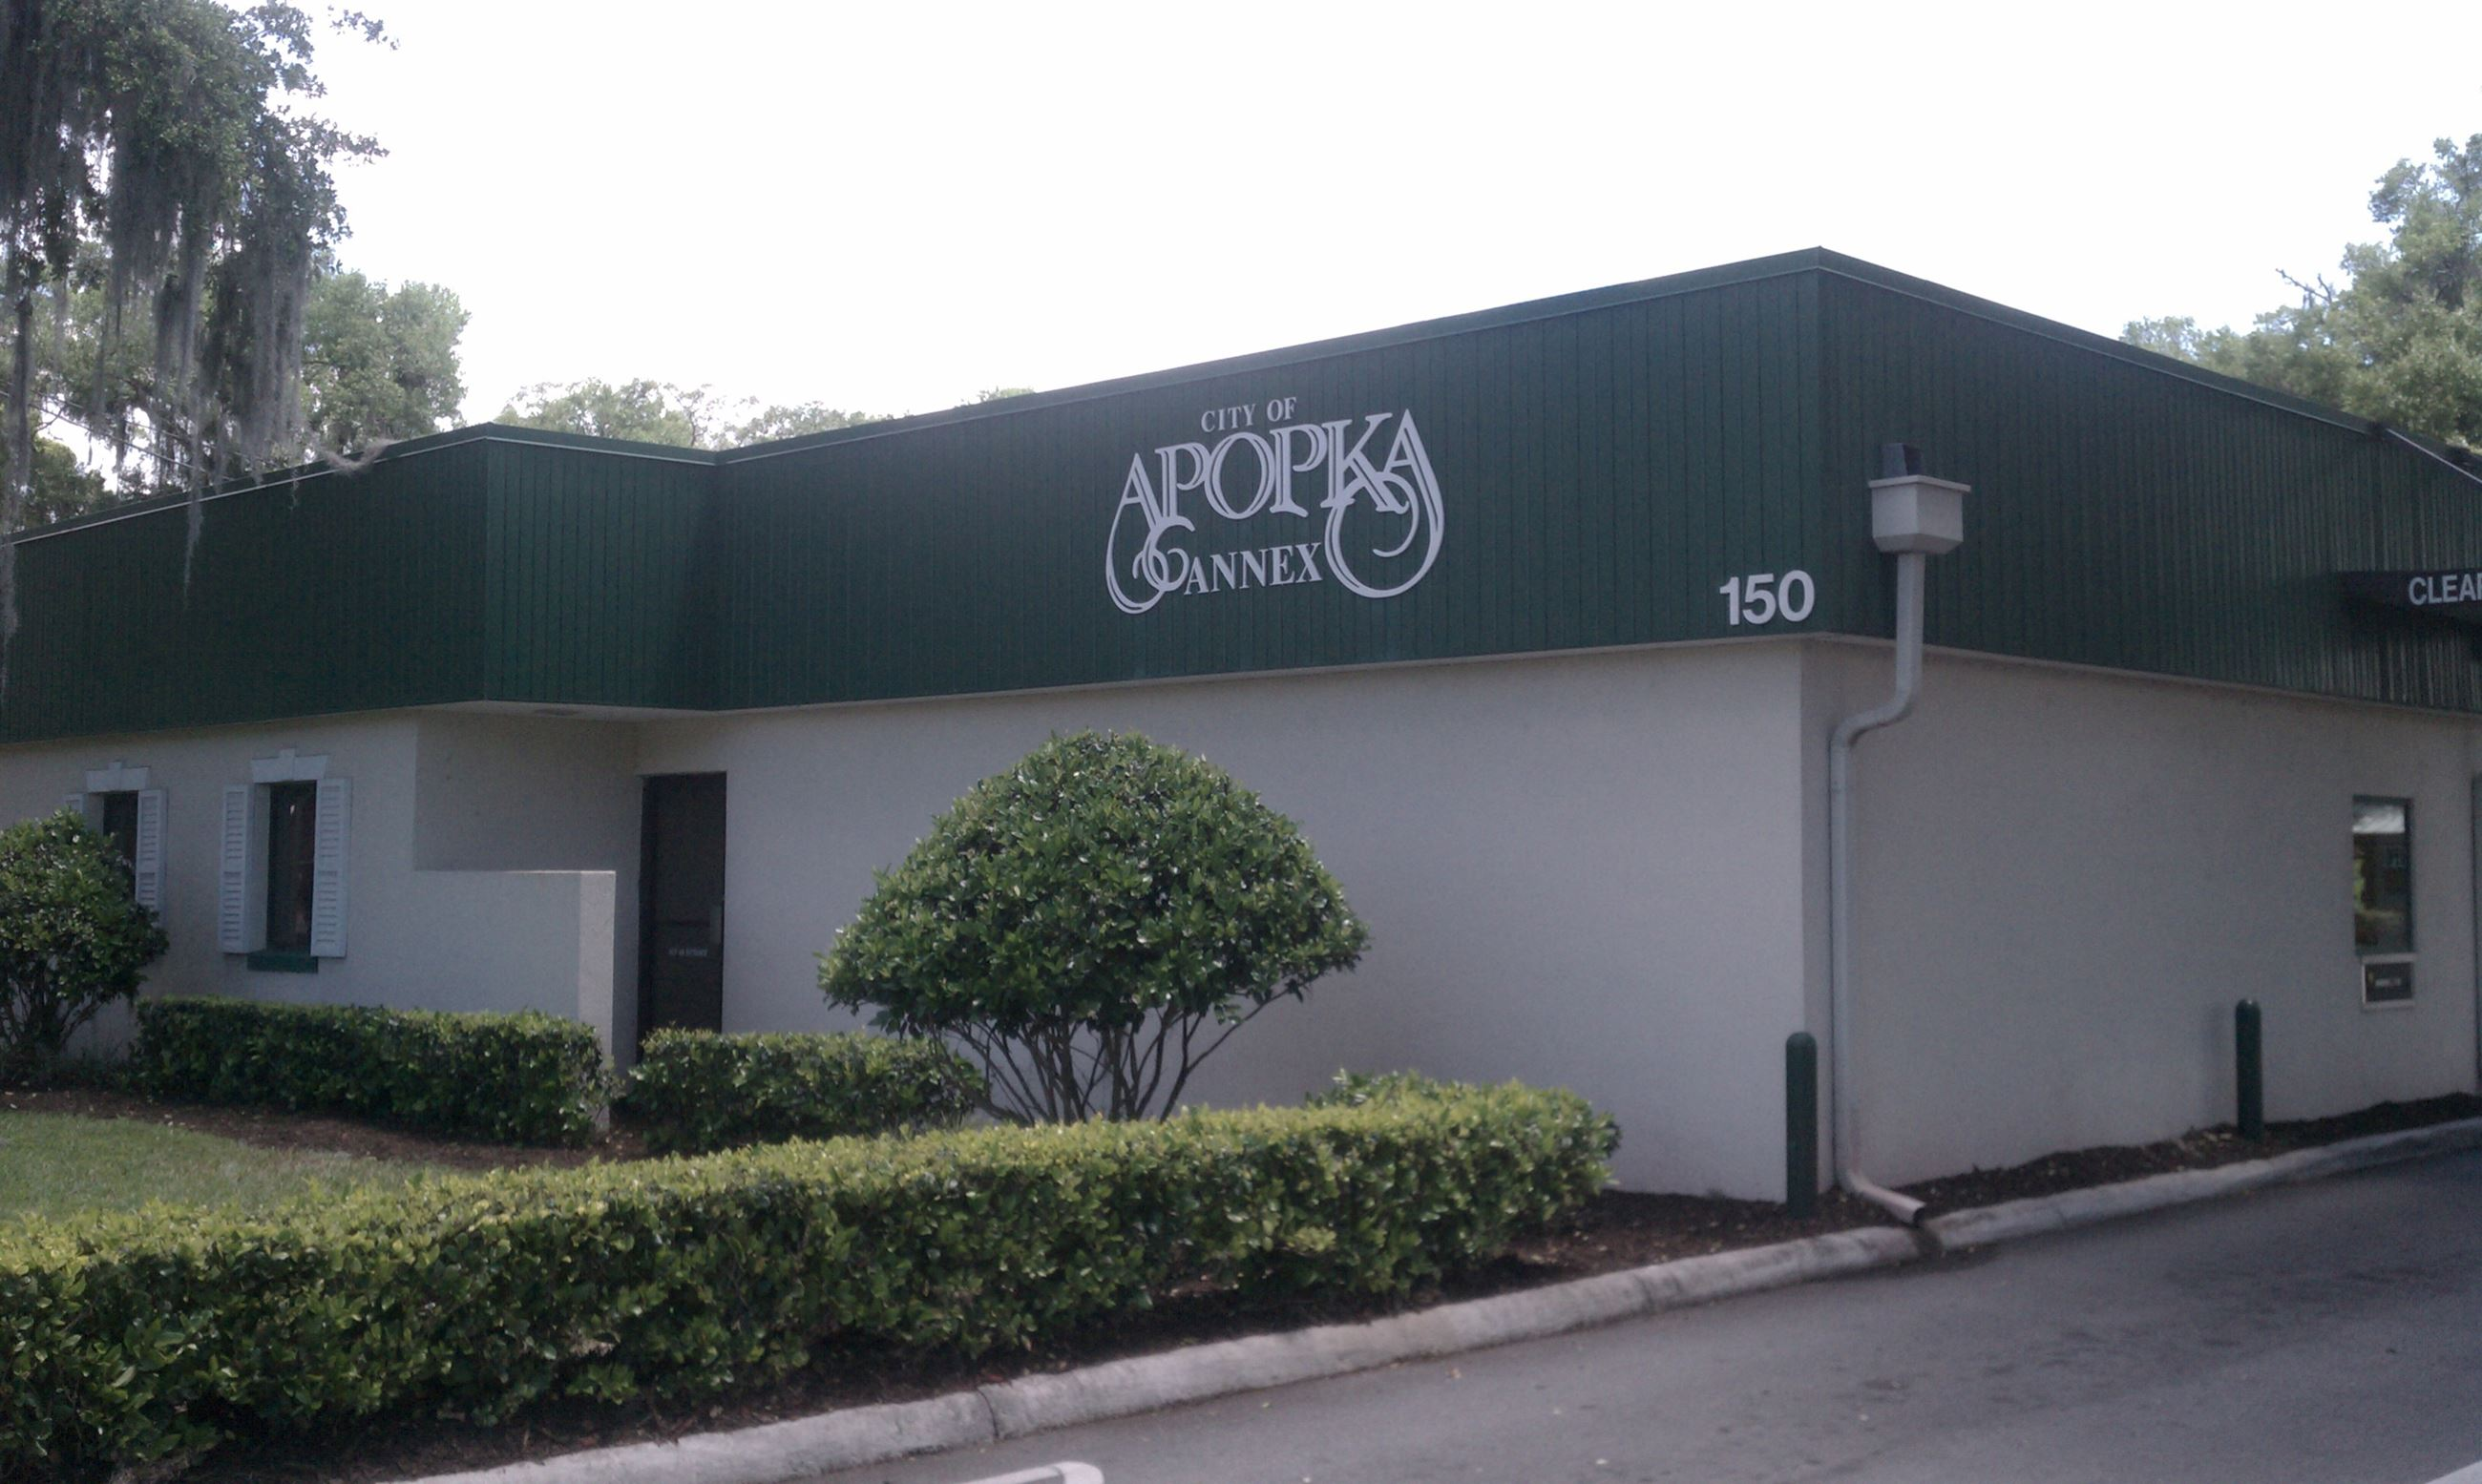 An entrance to the City Hall Annex building of Apopka